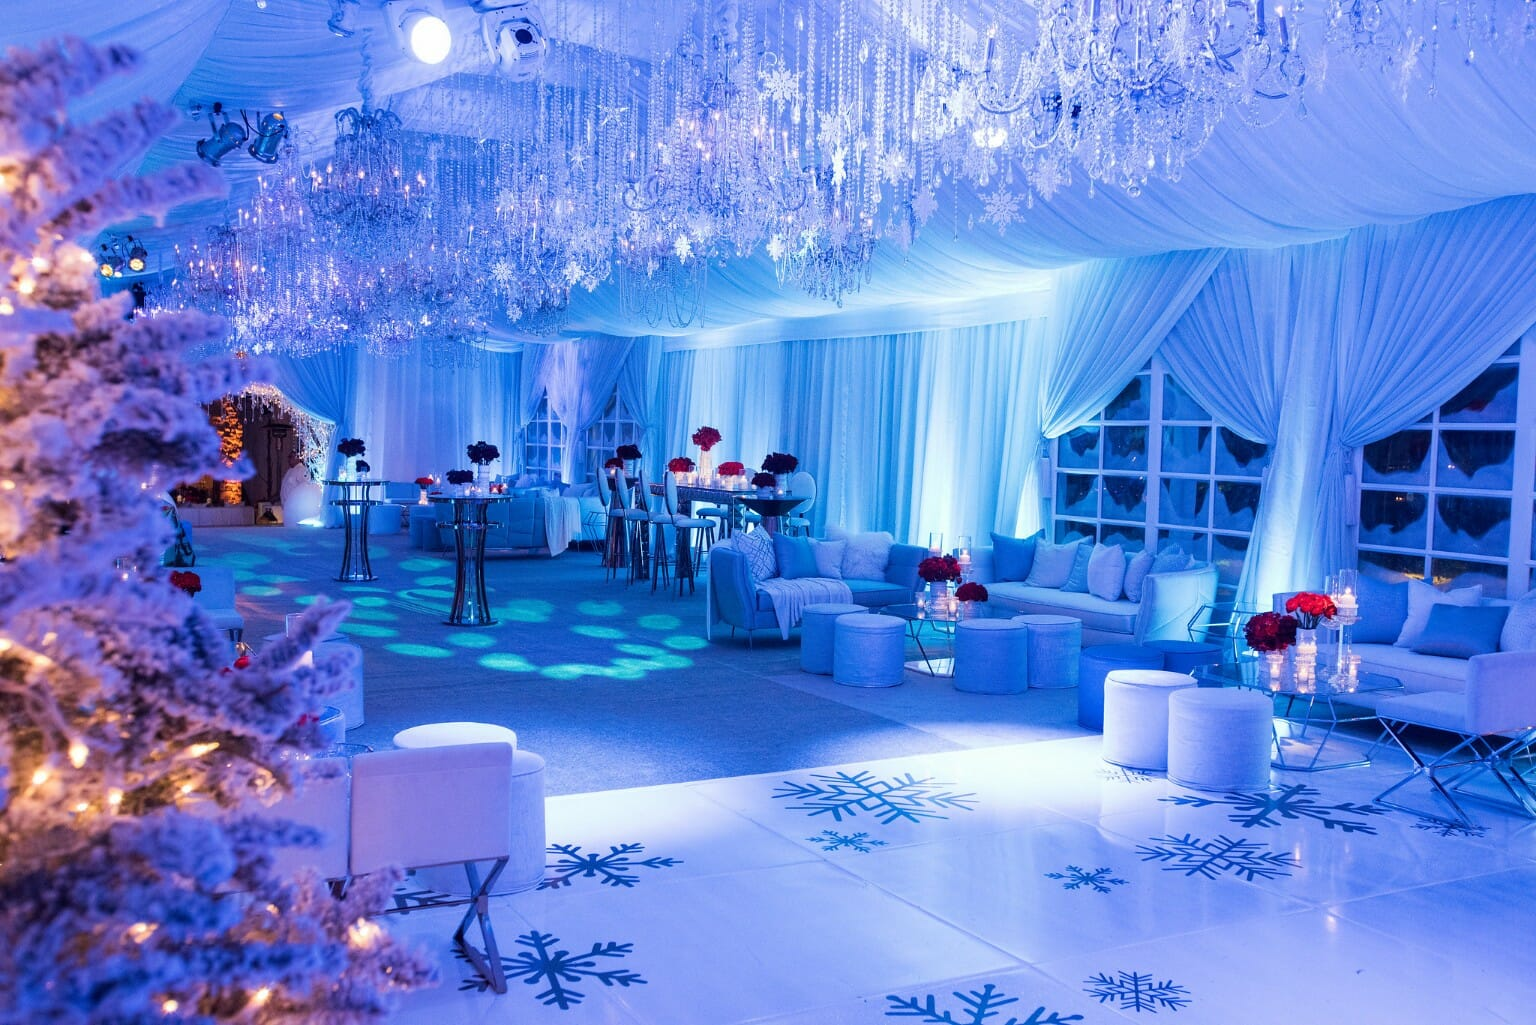 Holiday event in Las Vegas